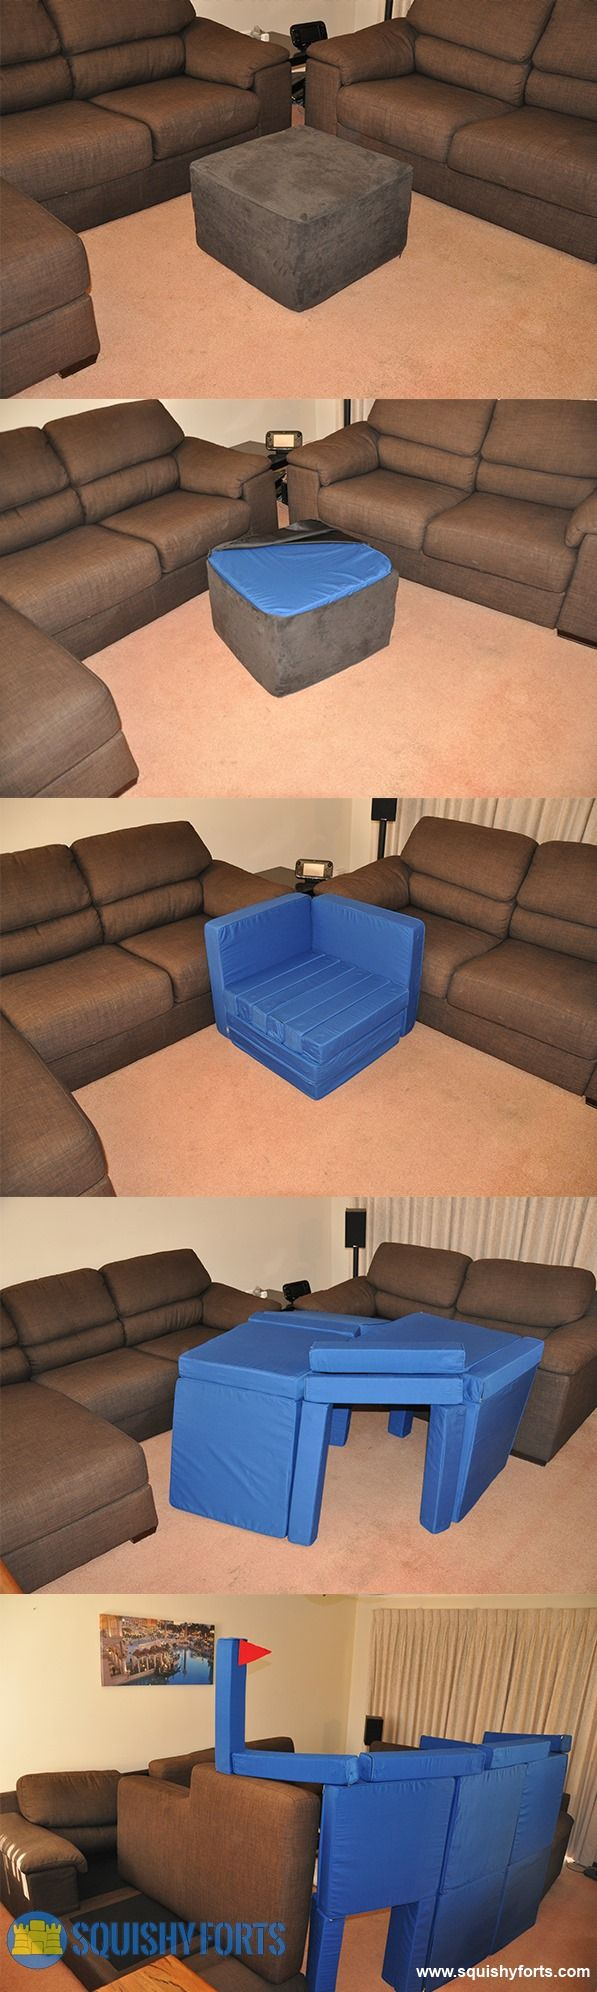 Pillow Fort Construction Kit Disguised as a Foot Stool - Imgur.  www.squishyforts.com